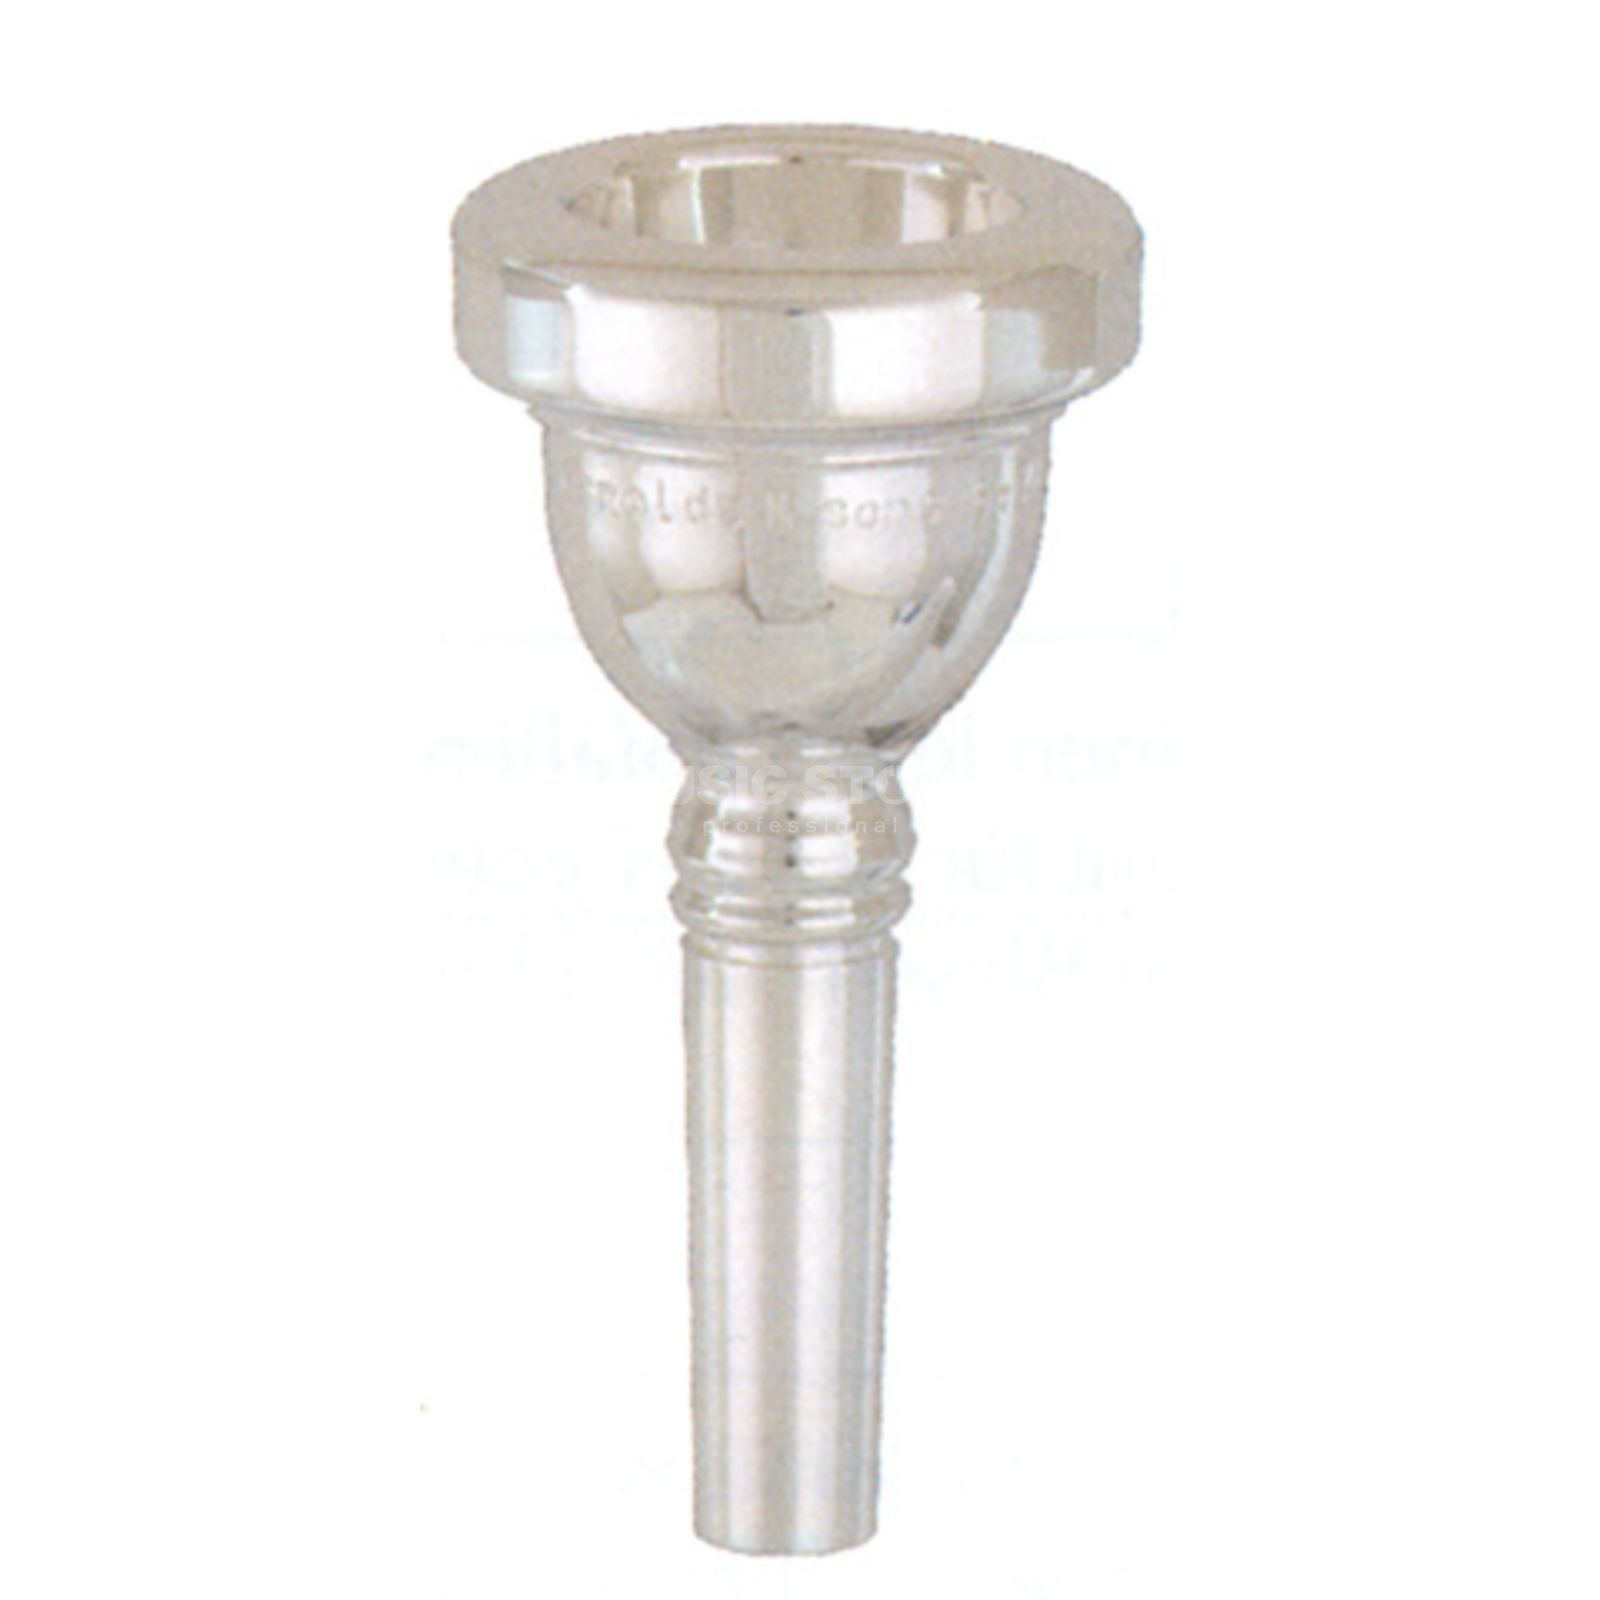 Arnolds & Sons 12 T Tenor Horn Mouthpiece Product Image